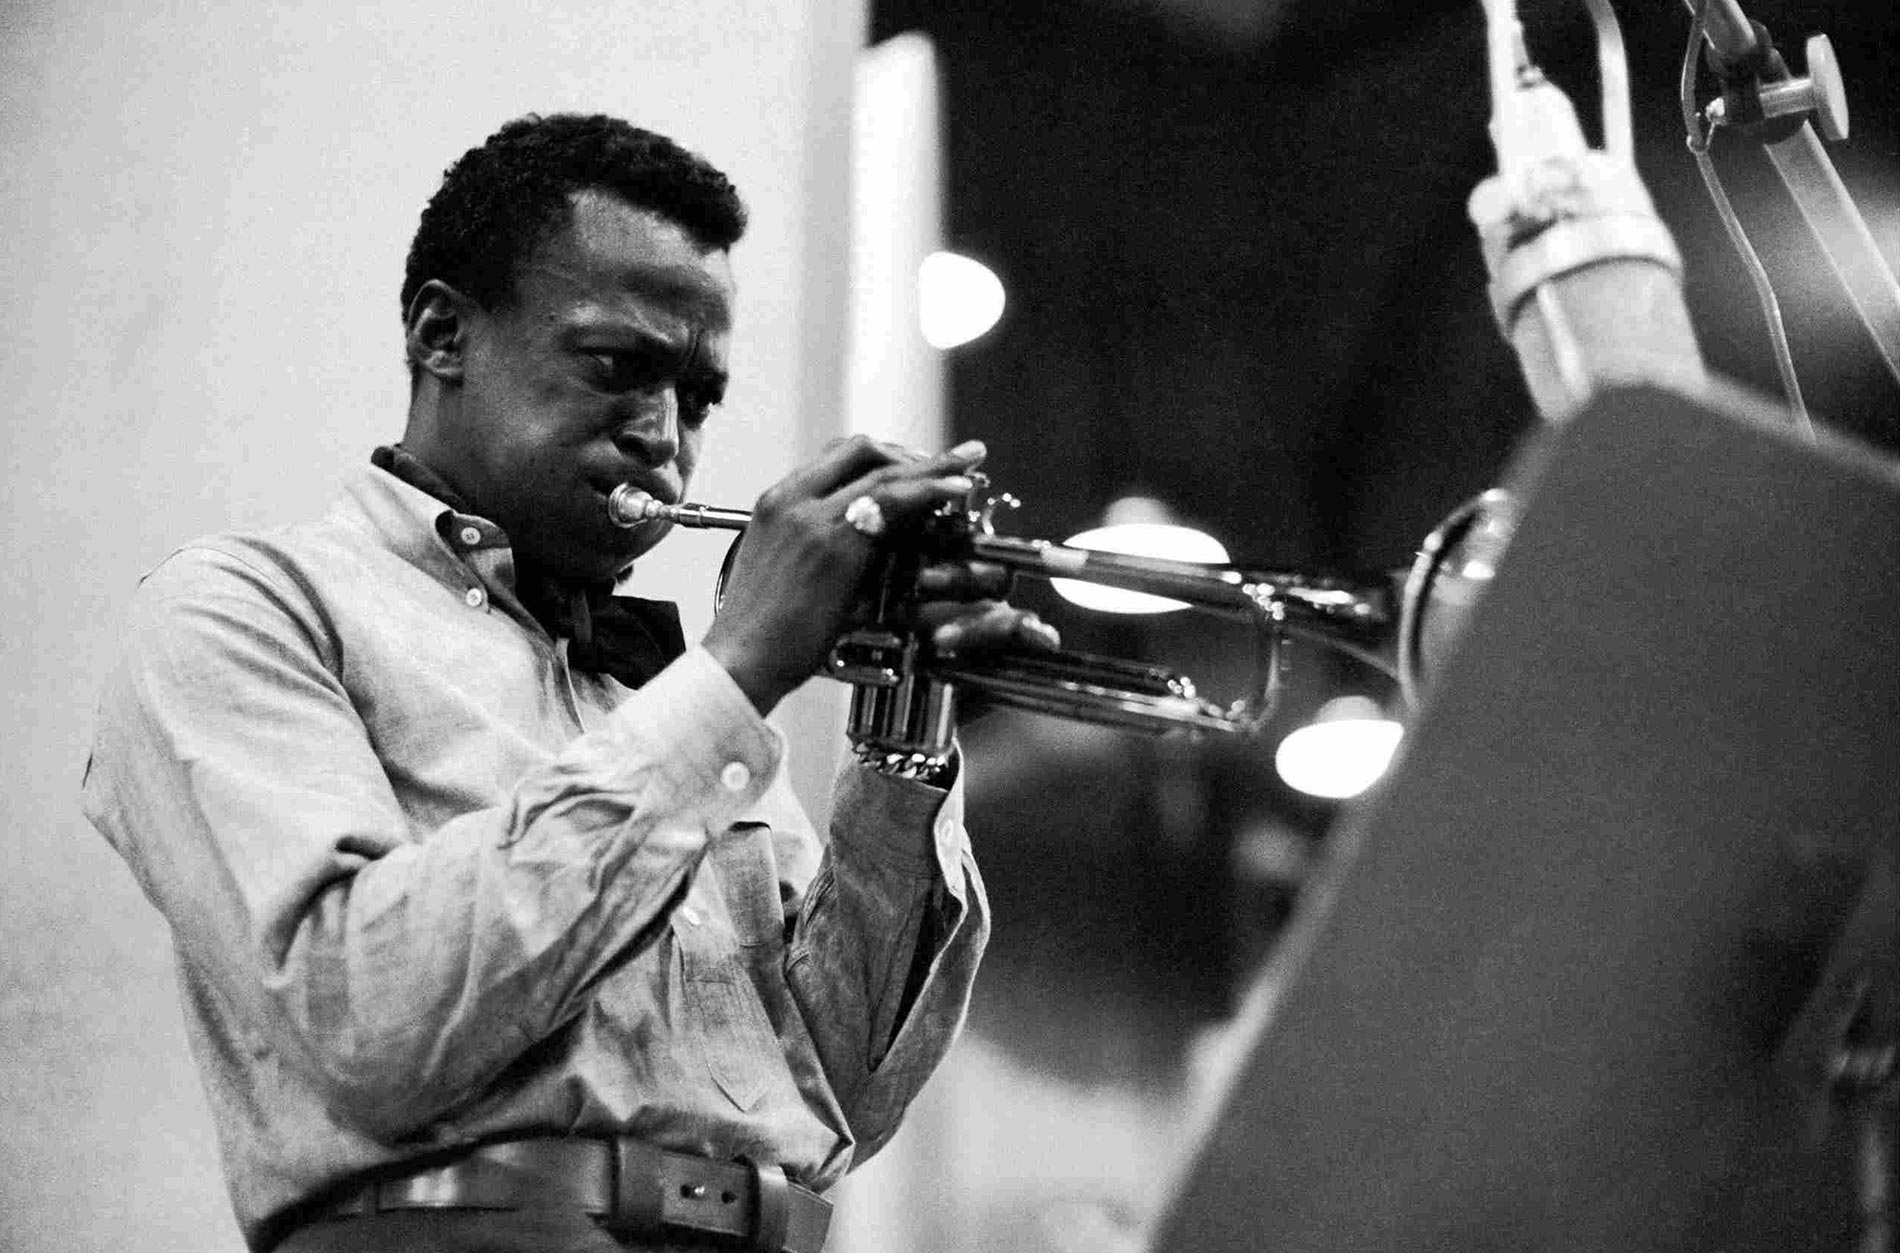 Unboxing and Unpacking Miles Davis' Kind of Blue LP